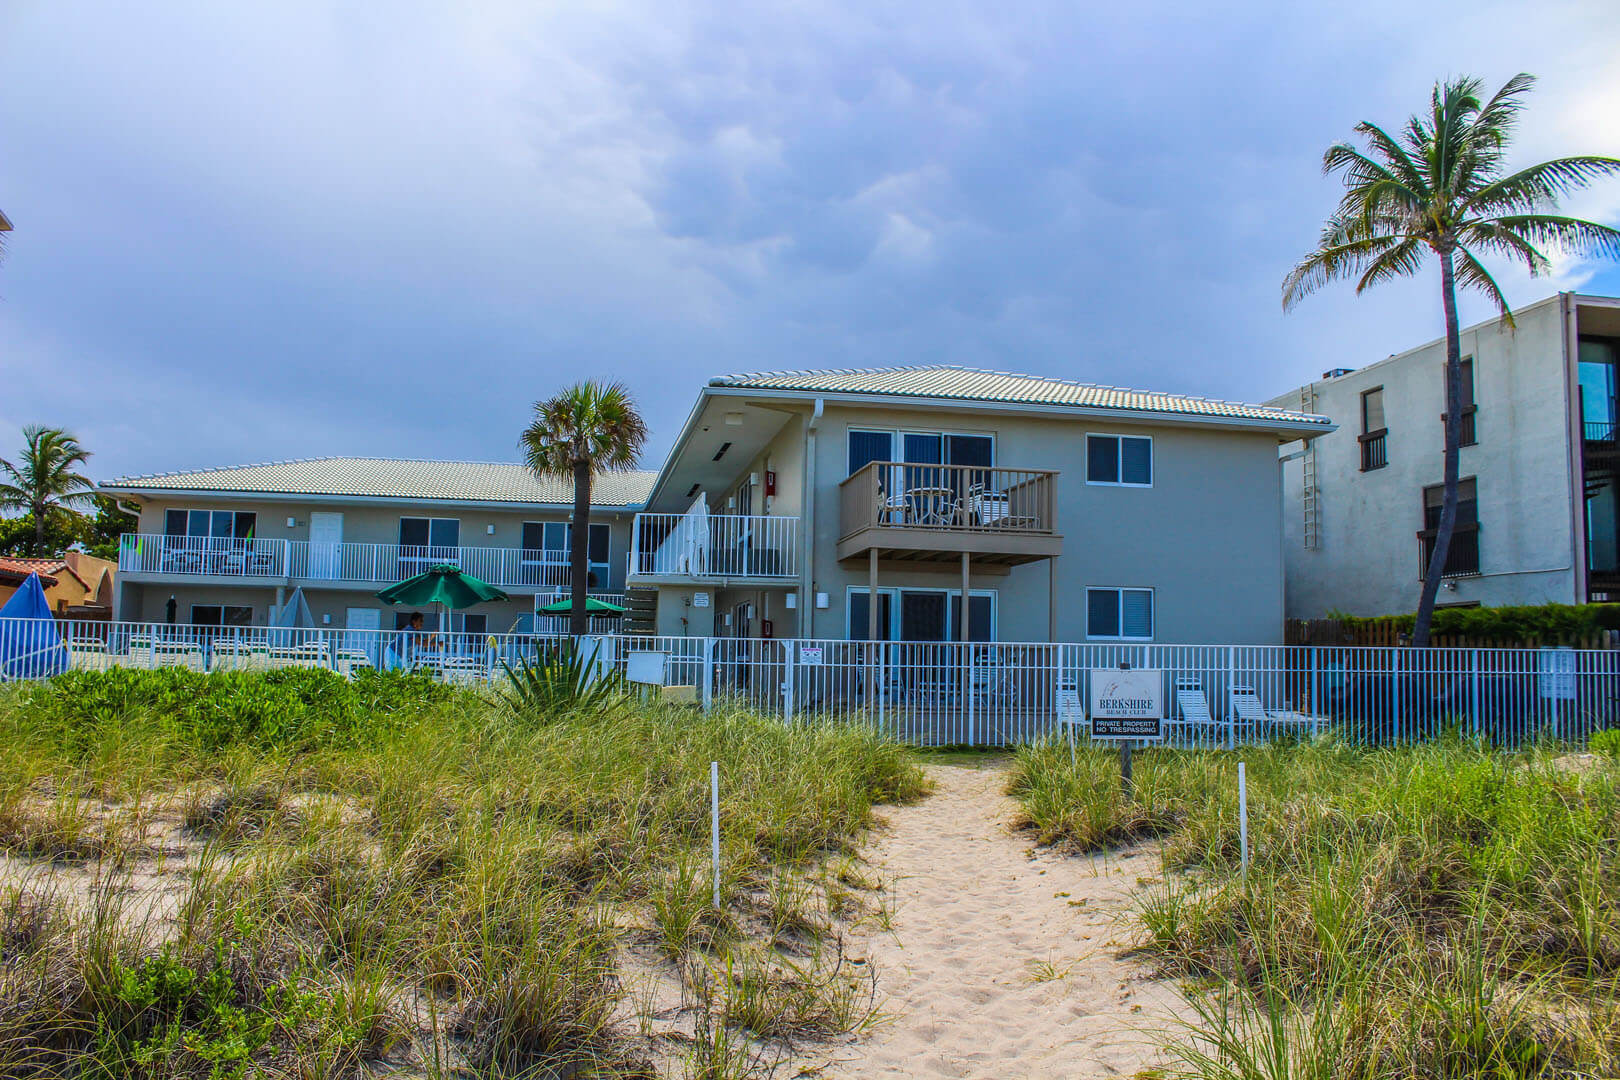 Birkshire Beach Club Building